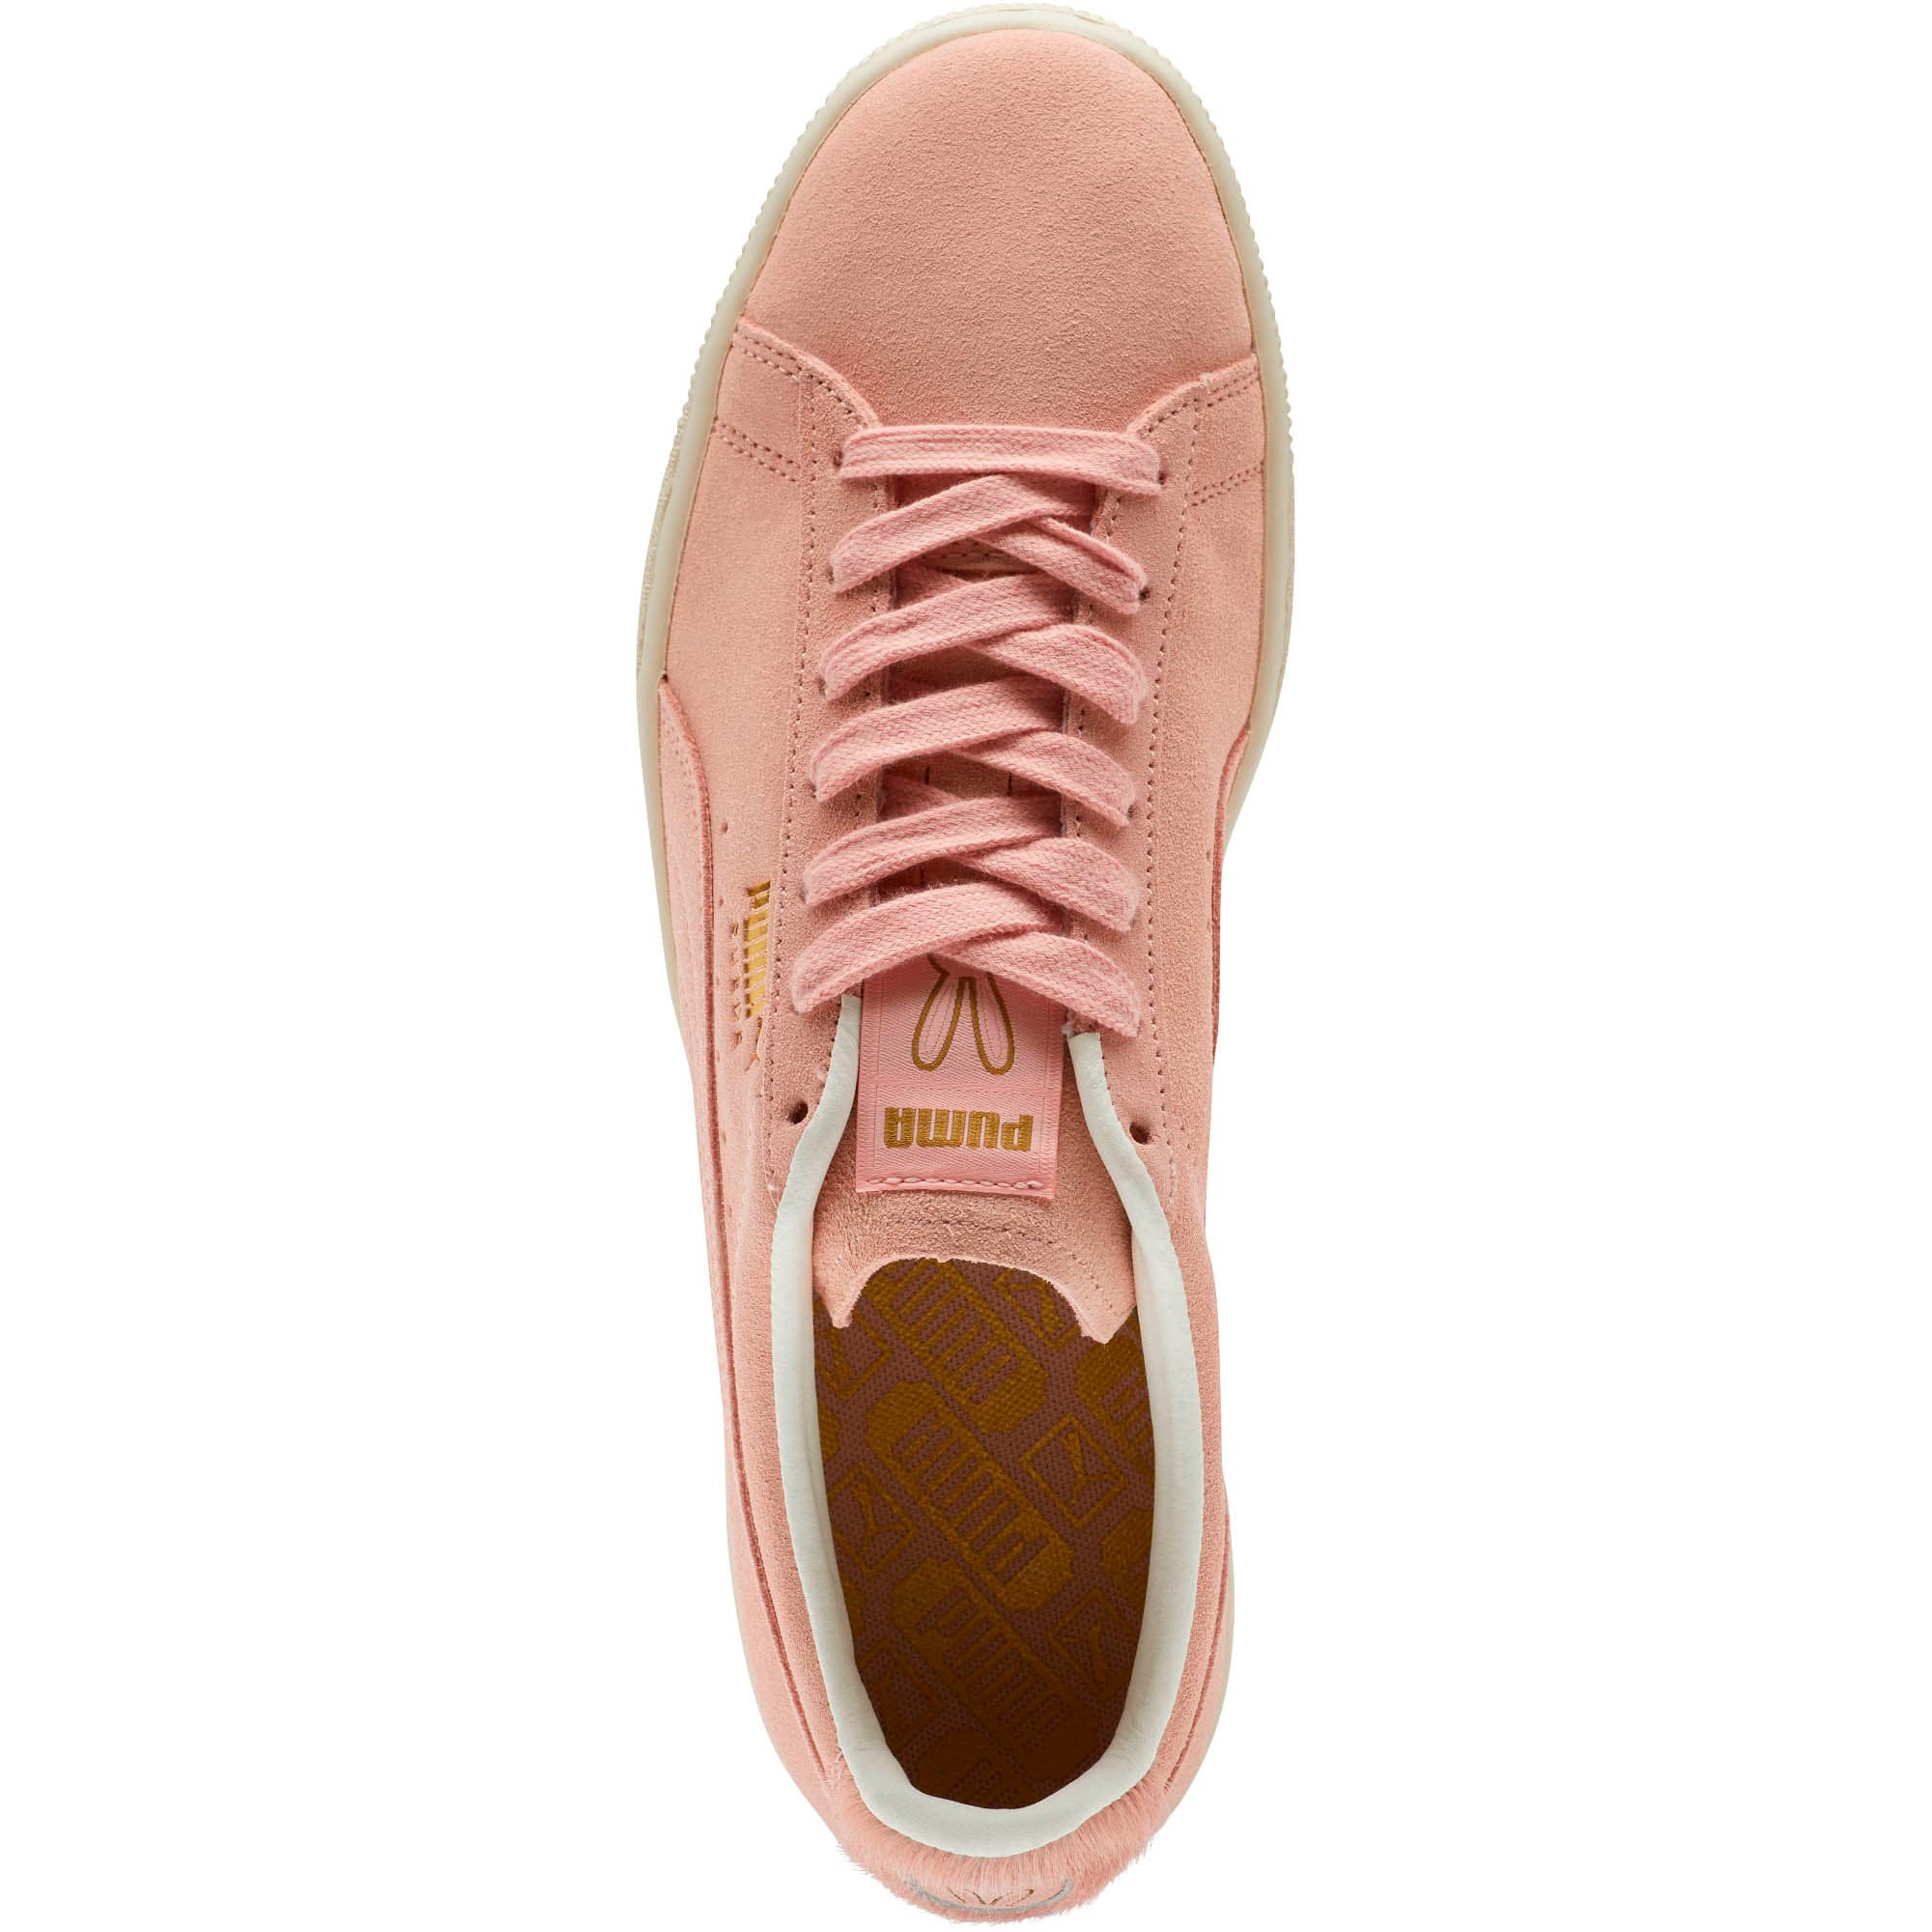 Thumbnail 5 of Suede Classic Easter Sneakers, Coral Cloud-Whisper White, medium